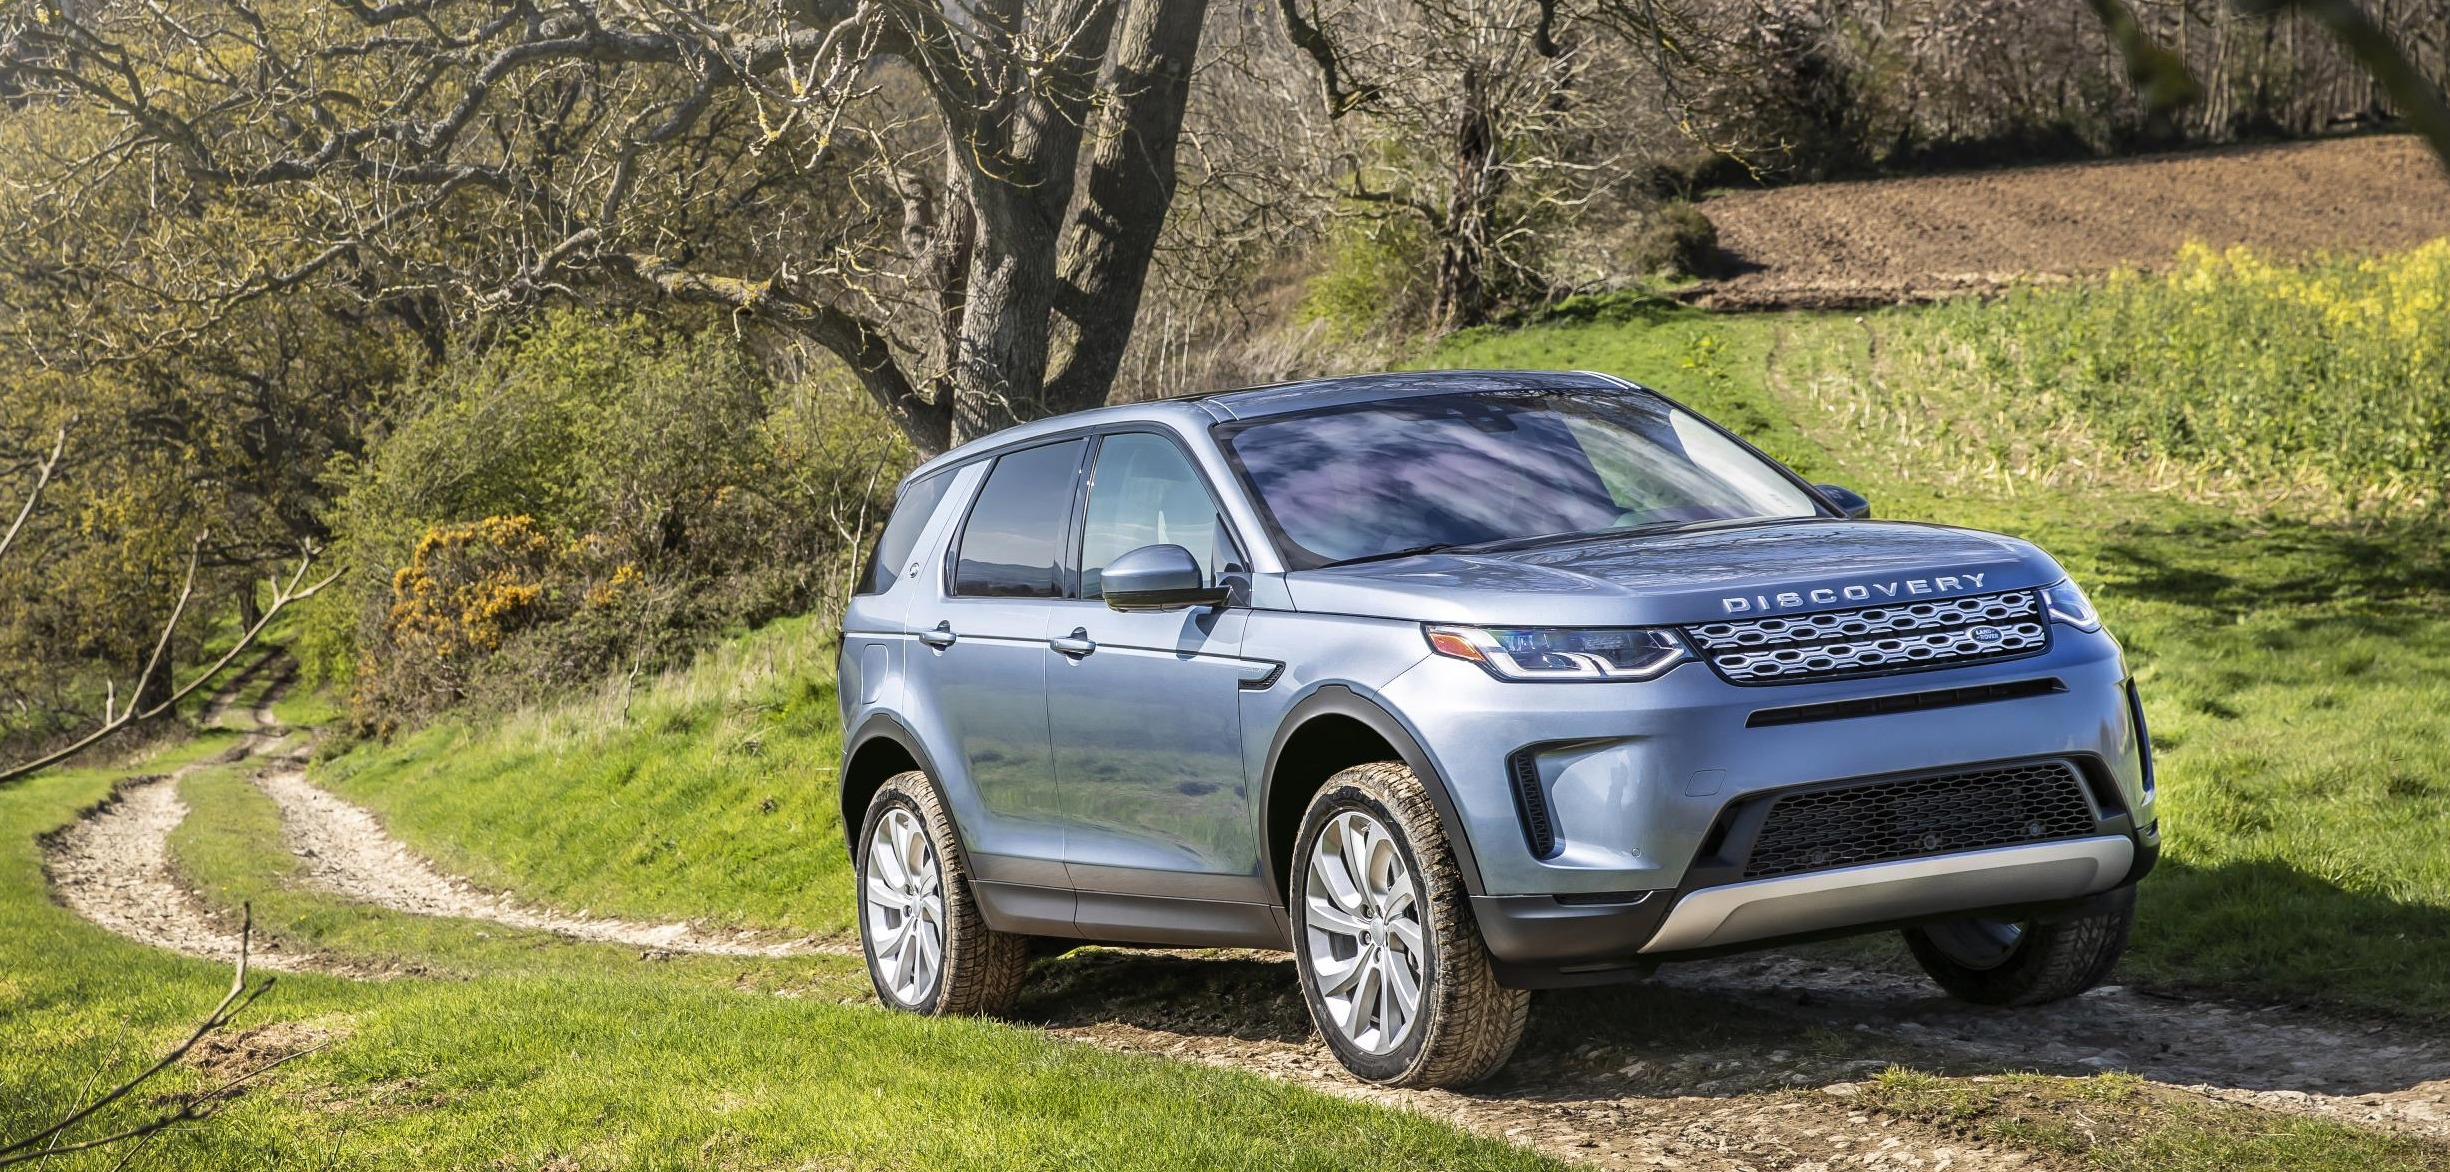 2020 Land Rover Discovery Is Built On The New Architecture >> New Hybrid Land Rover Discovery Sport Unveiled Electric